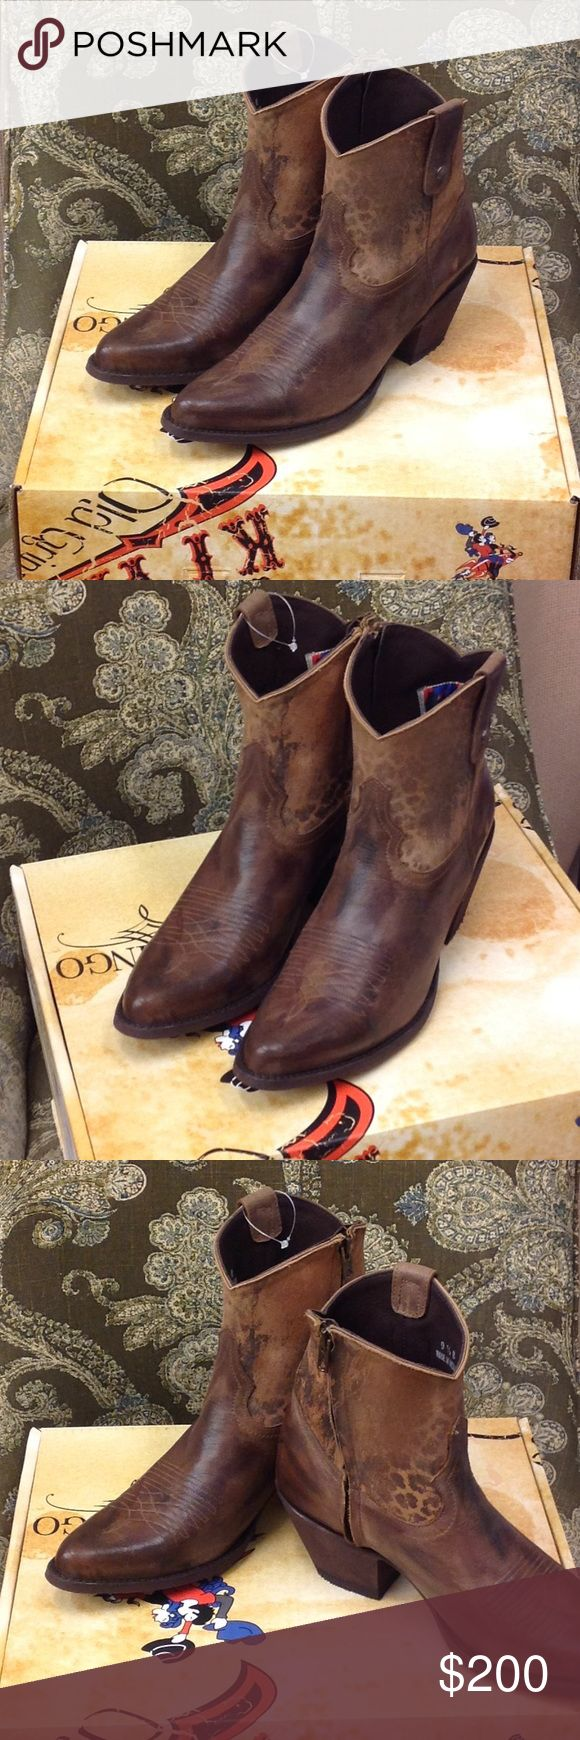 Old Gringo Yippee Ki Yay brand Booties Super cute Old Gringo Yippee Ki Yay booties. These are new never worn in the box. They are a shorter Ankle boot with a zipper on the inside for easy on off. The hint of cheetah print on the shaft is the perfect touch to spice up any wardrobe. Old Gringo Shoes Ankle Boots & Booties